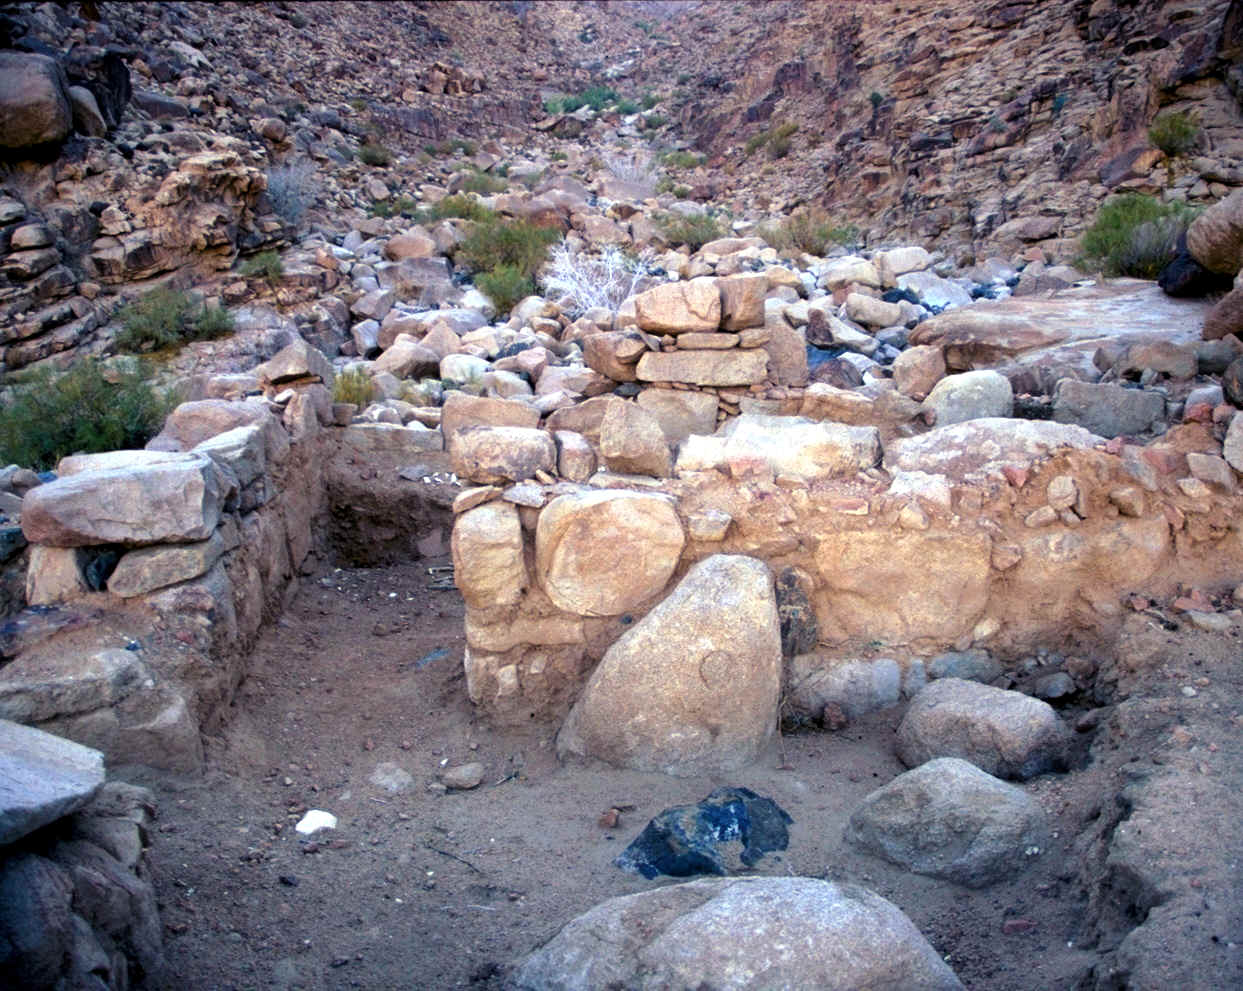 Evidences at Jebel el Lawz While at the mountain, Ron found the